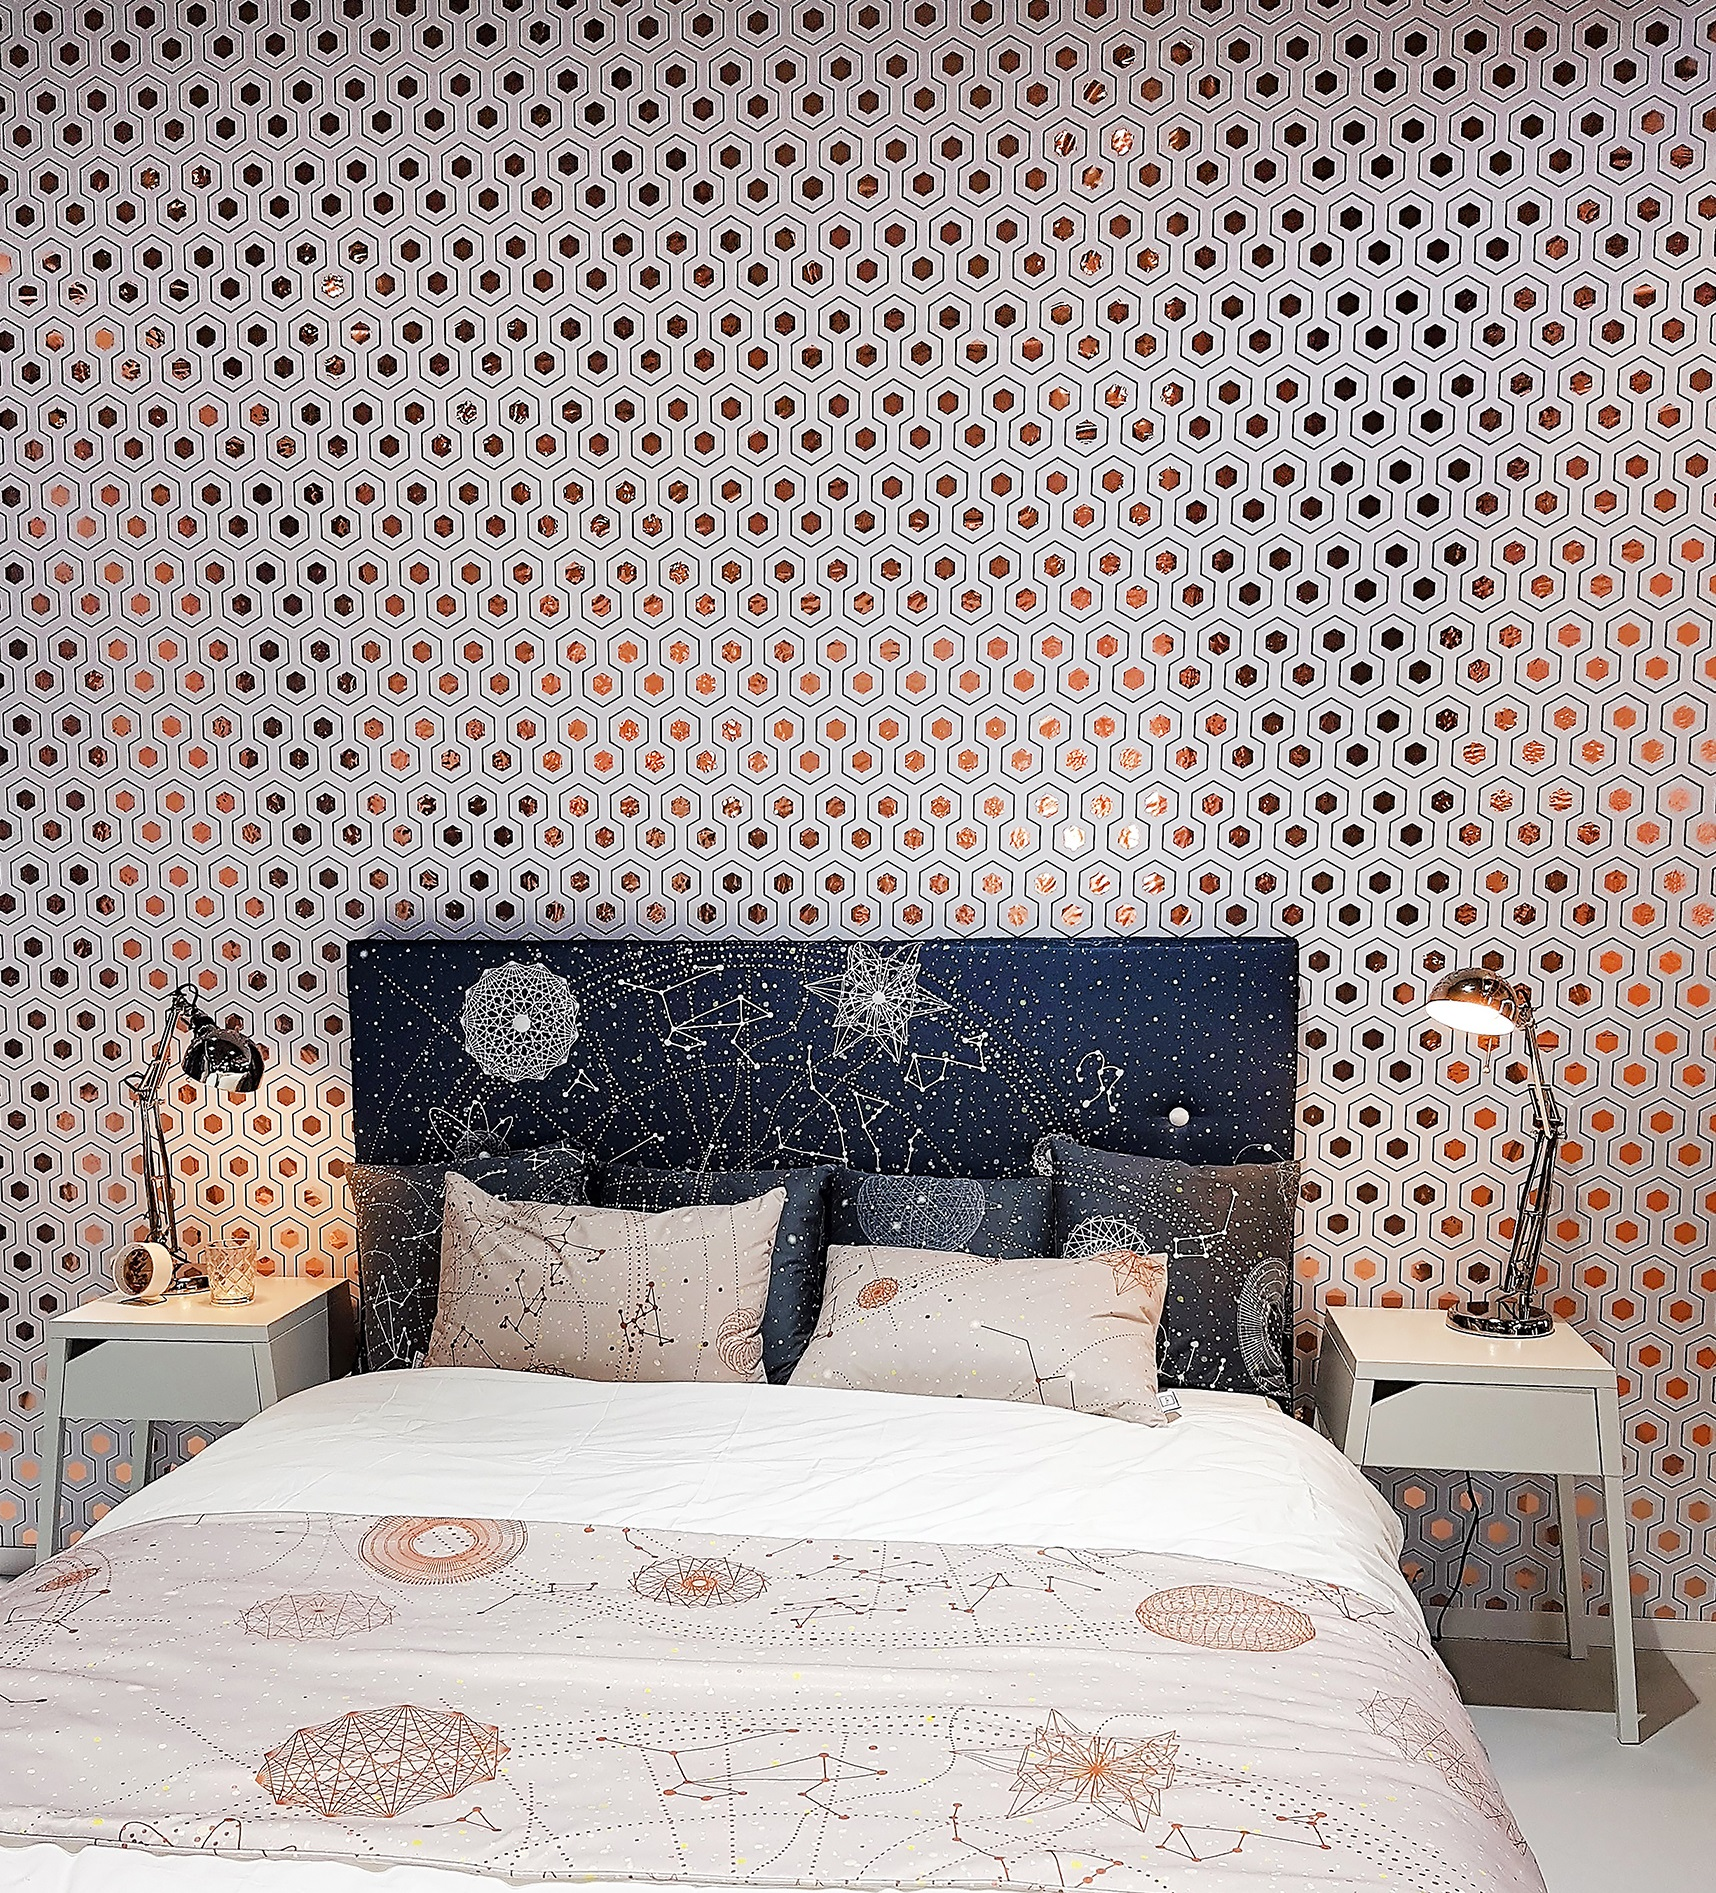 MetaliK Rose Gold Wallpaper Bedroom.jpg